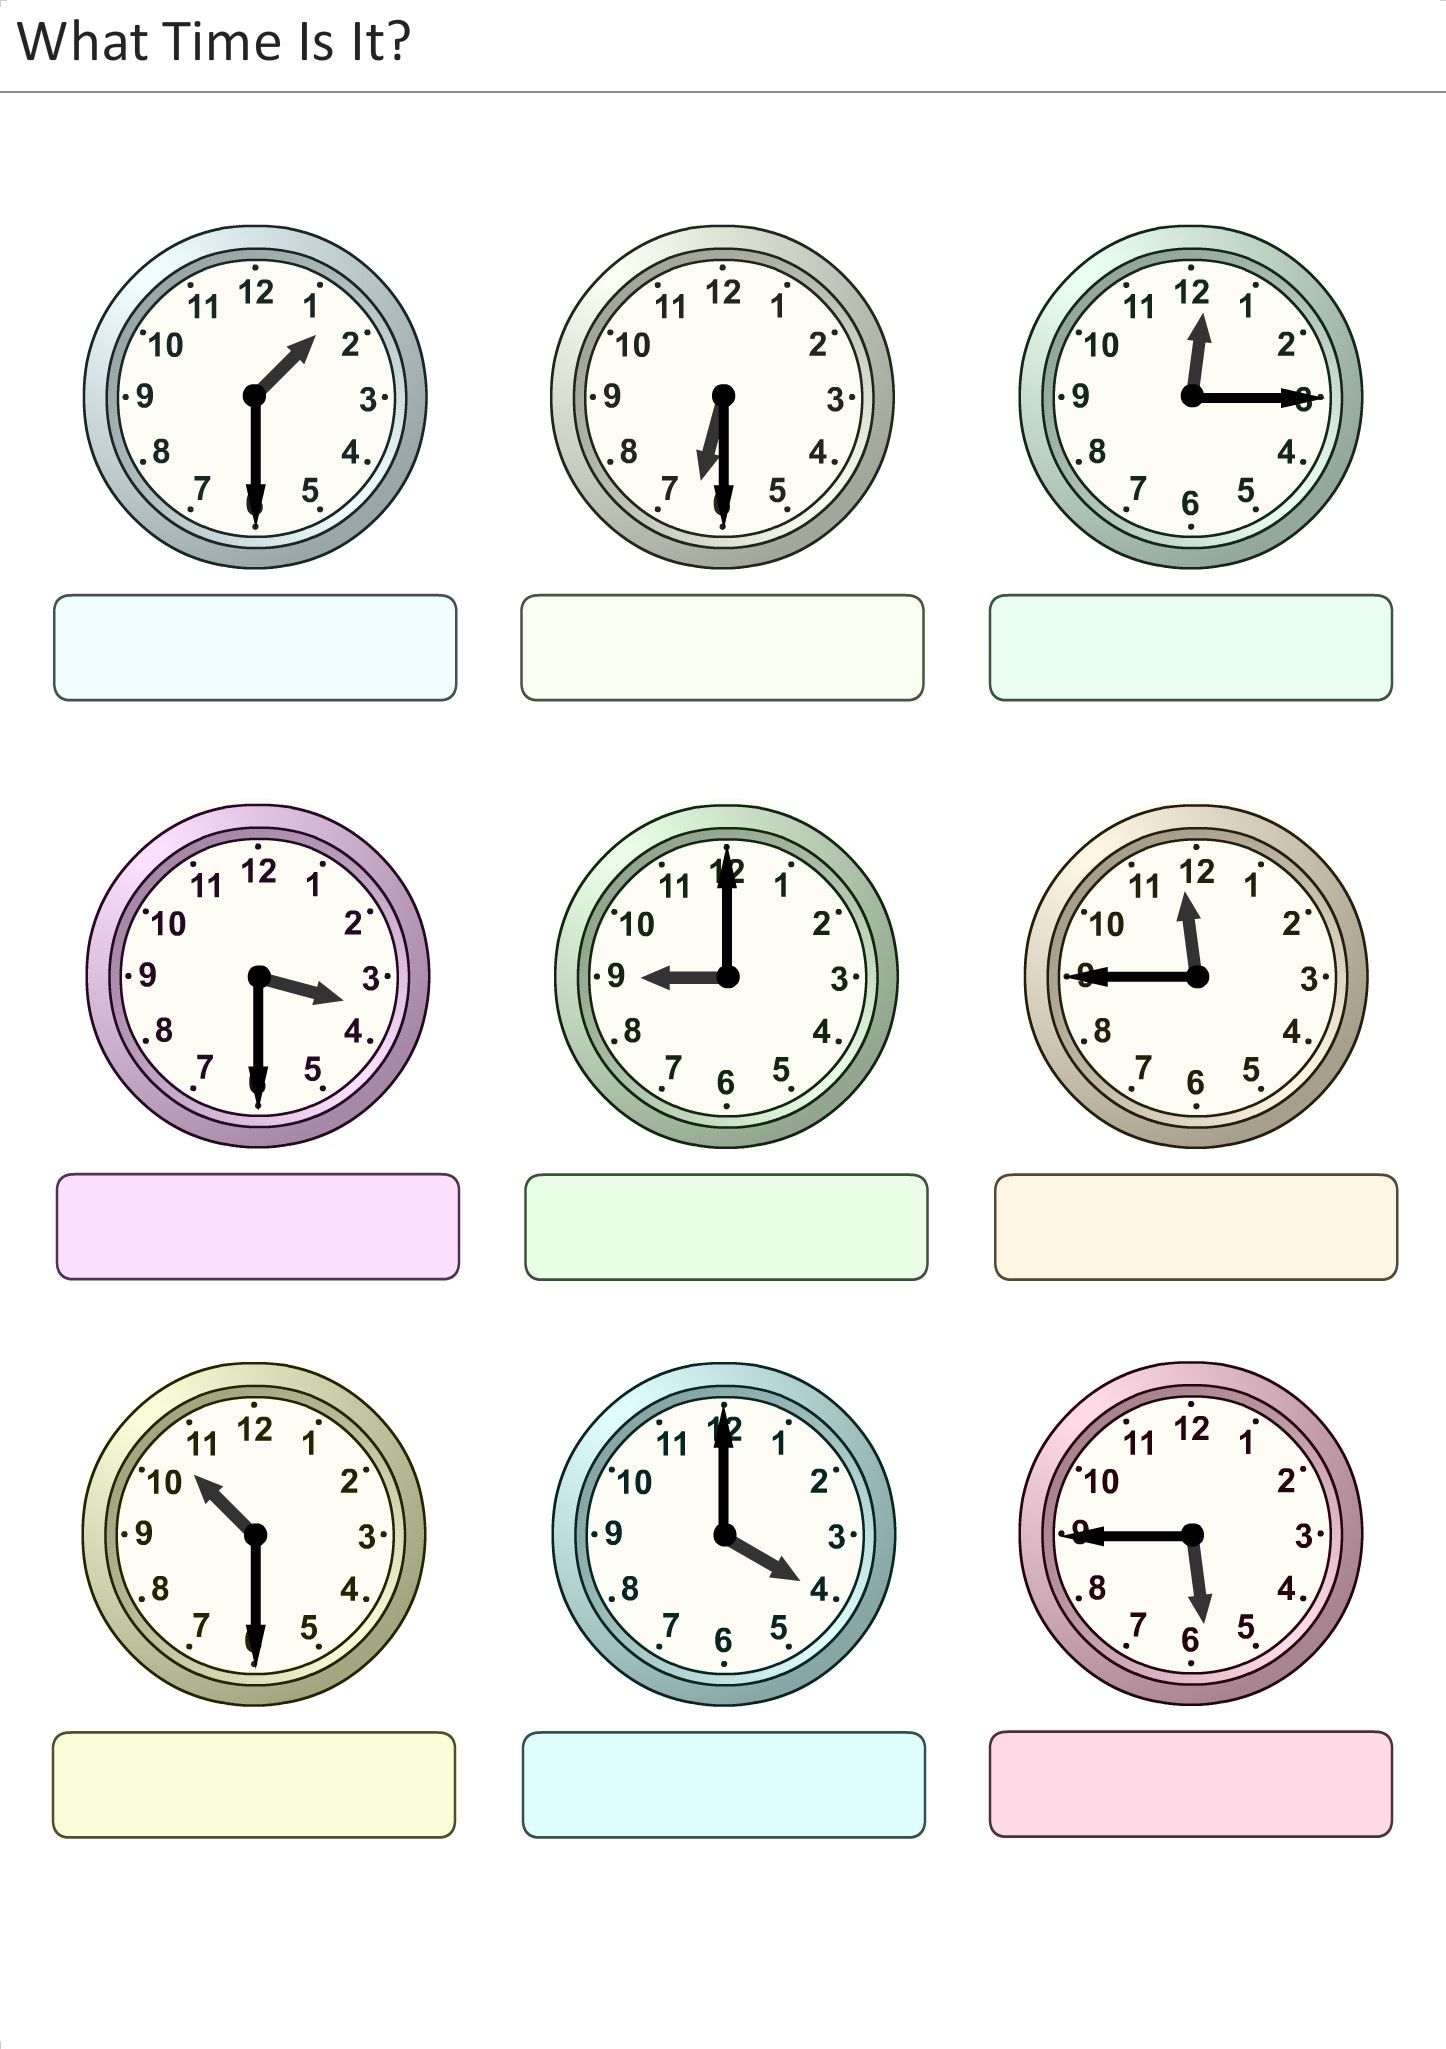 What Time Is It Worksheets For Children 7 With Images